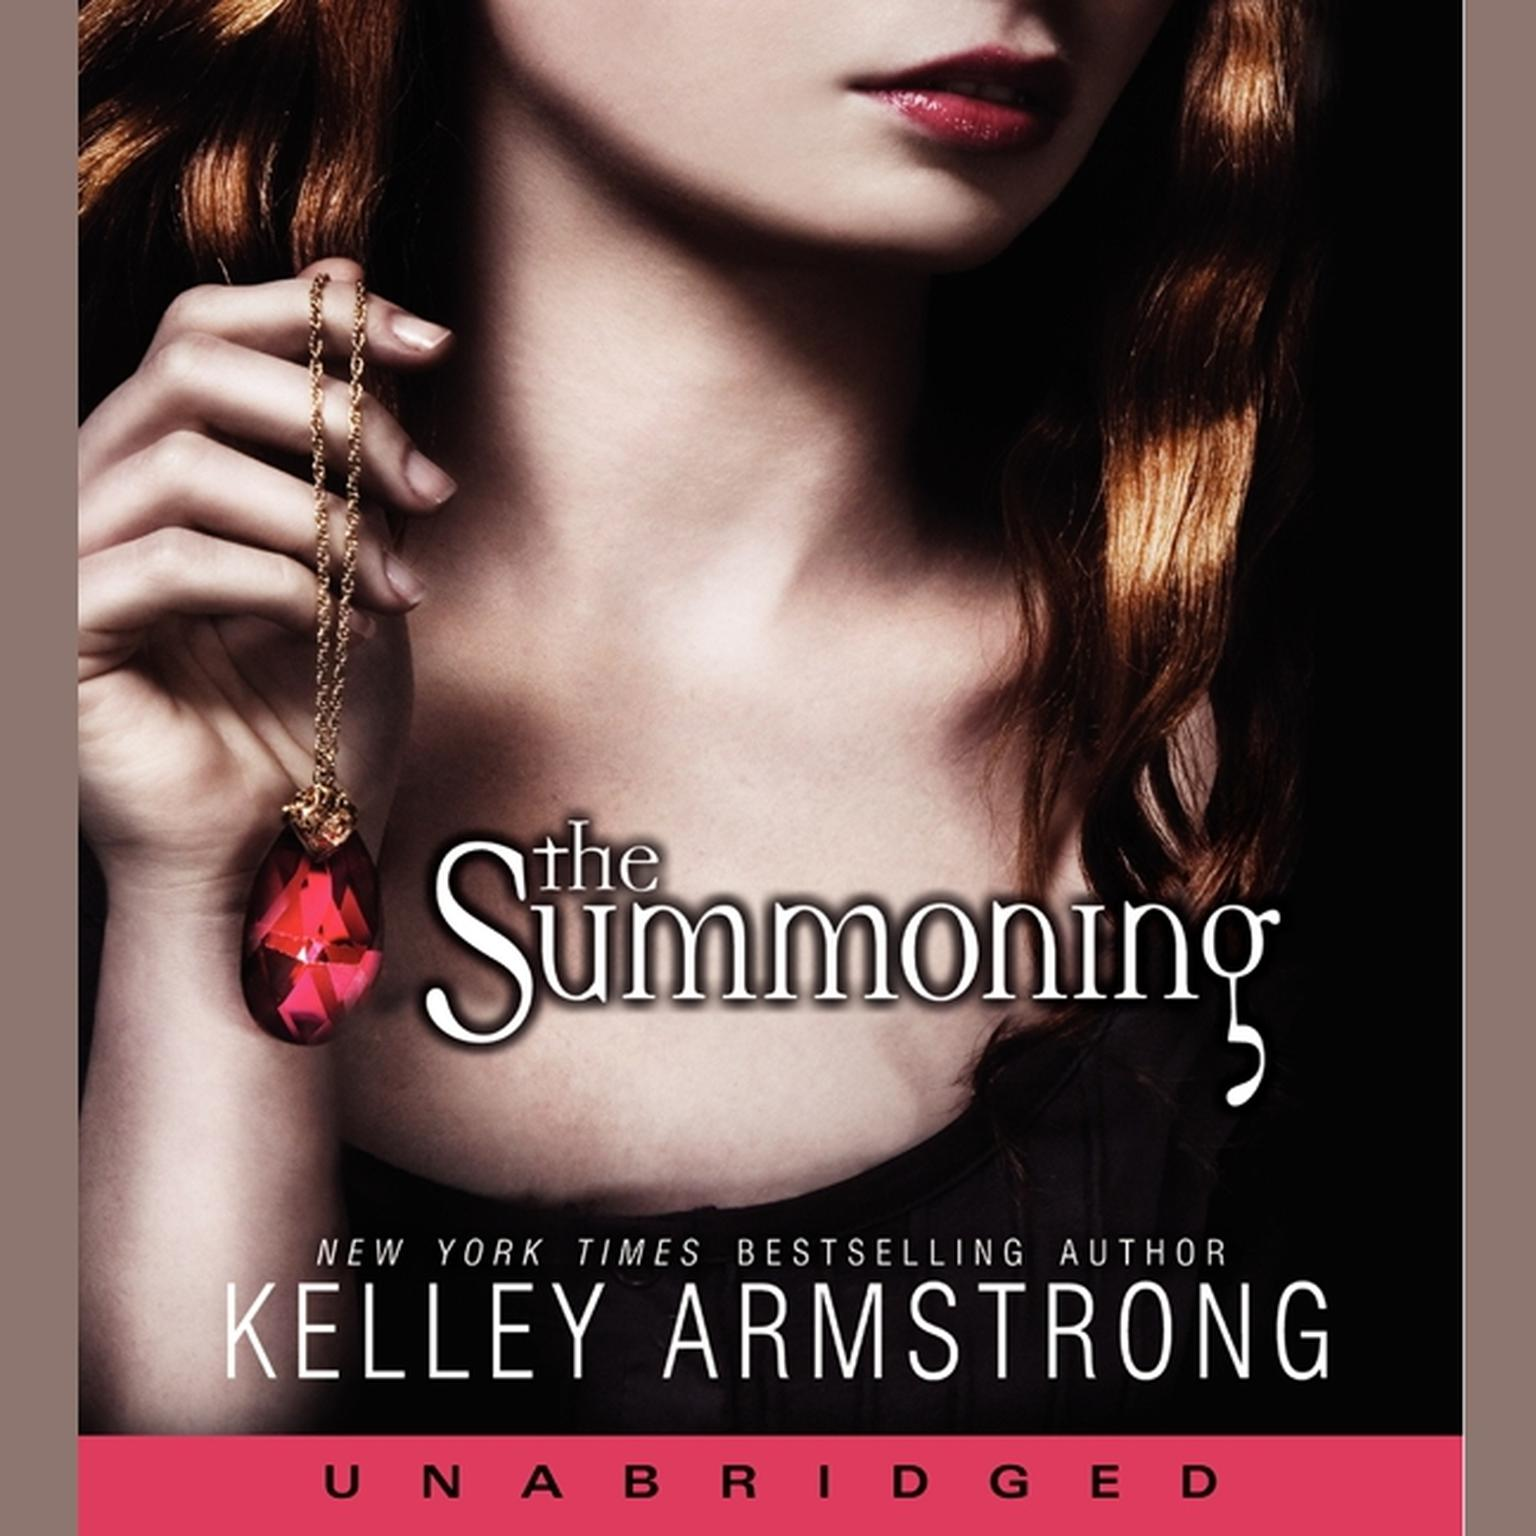 Printable The Summoning Audiobook Cover Art